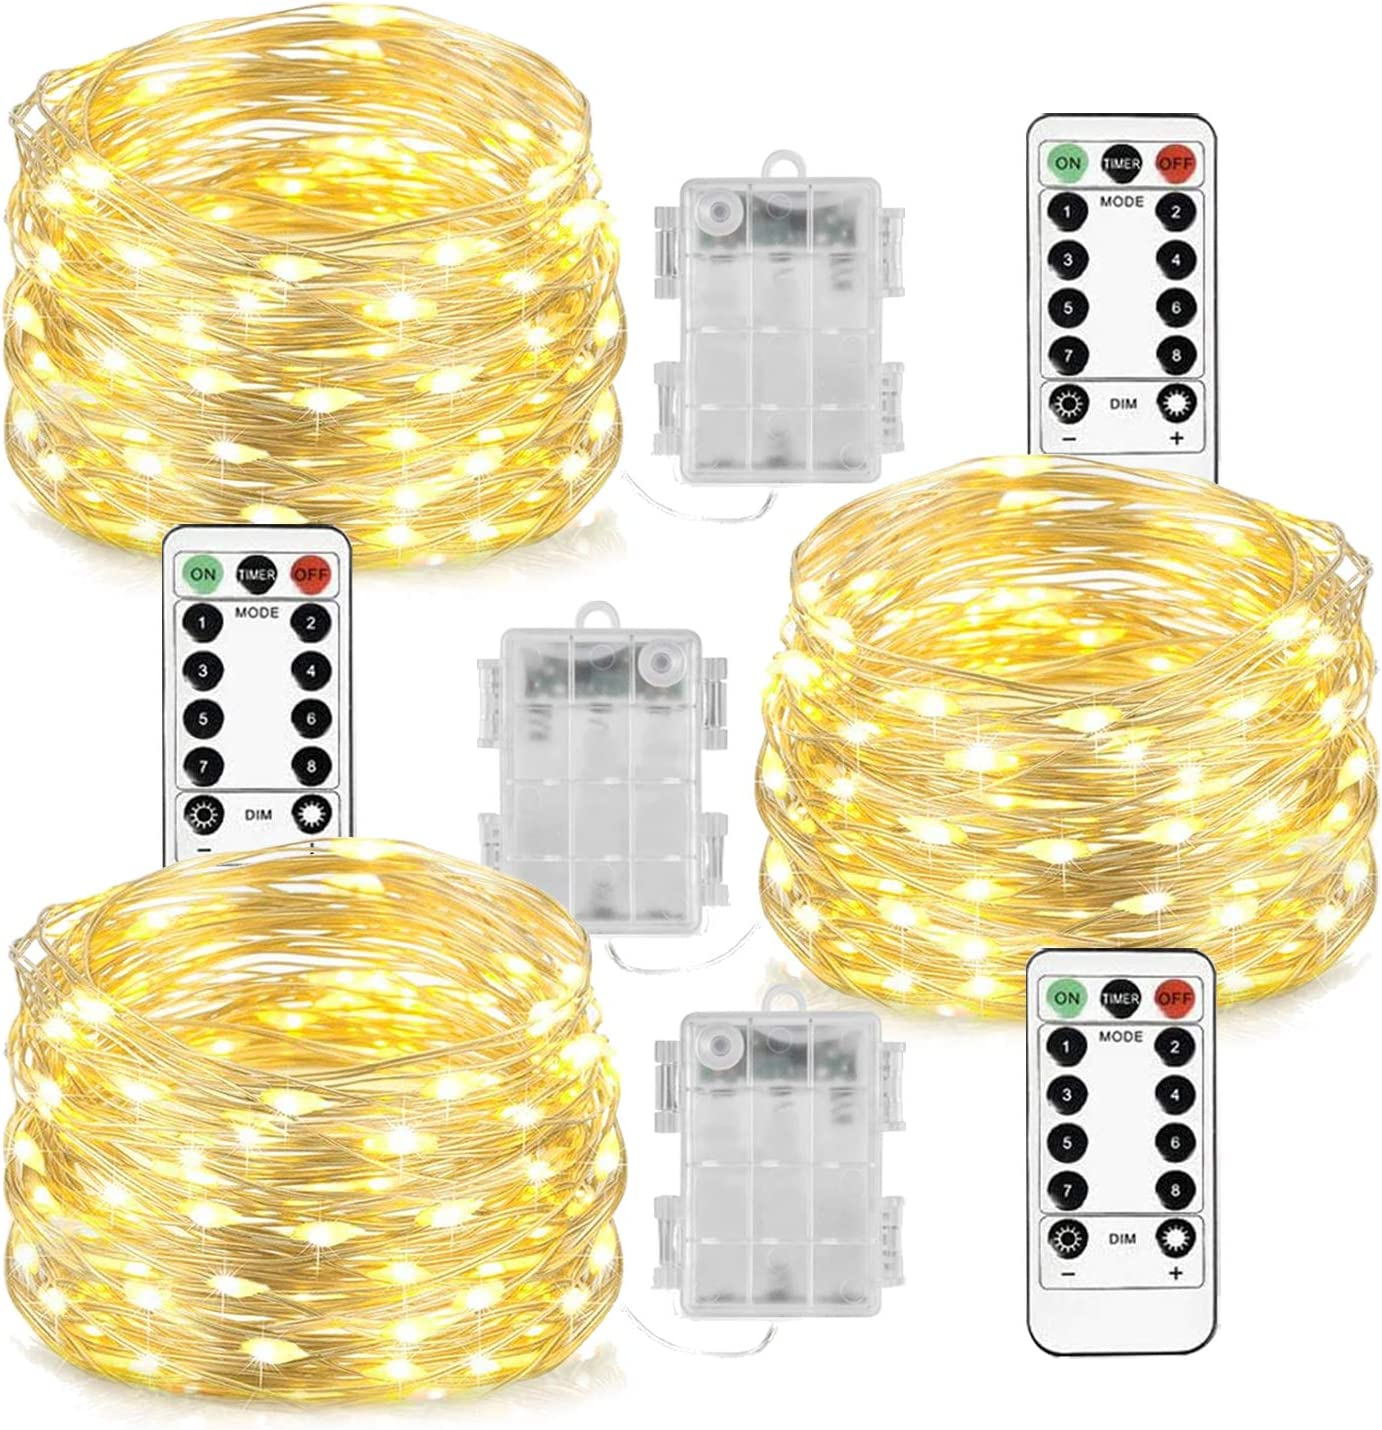 Homemory 3 Pack Fairy Lights with Remote, 100FT Battery Operated Long String Lights, 8 Modes Copper Wire Halloween Twinkle Lights Valentines Day Decor, Indoor&Outdoor Waterproof, Warm White